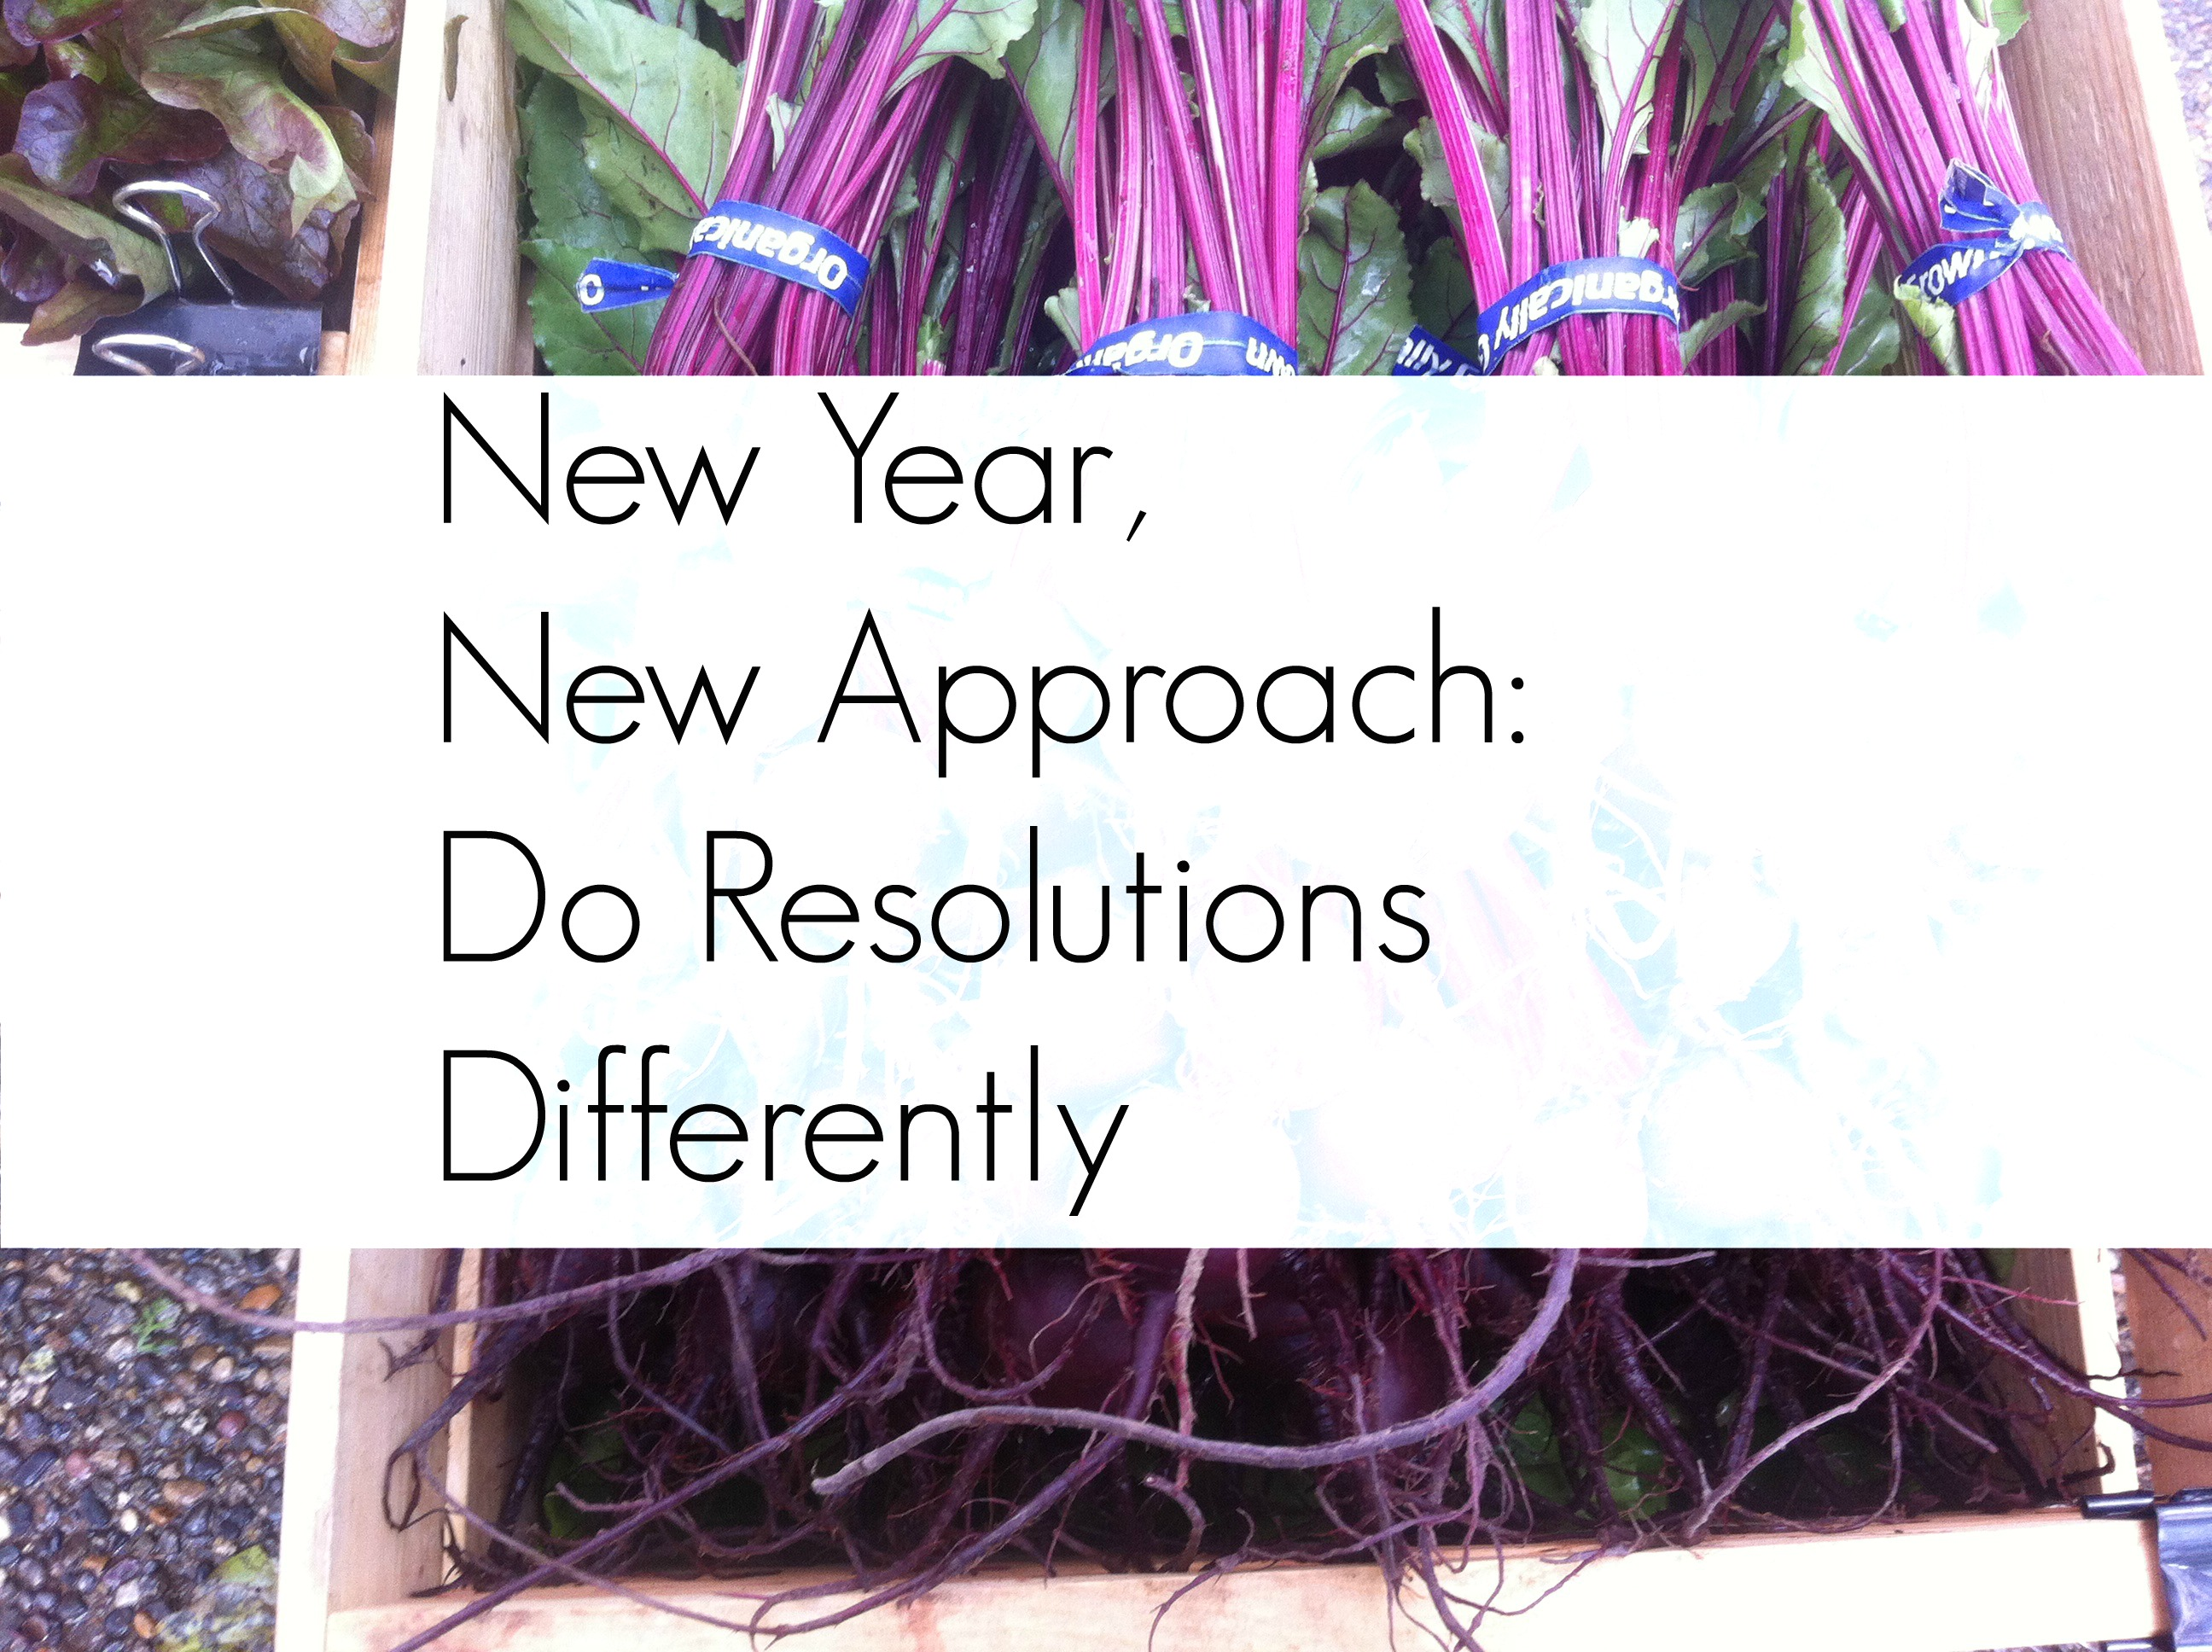 New Year, New Approach: Do Resolutions Differently